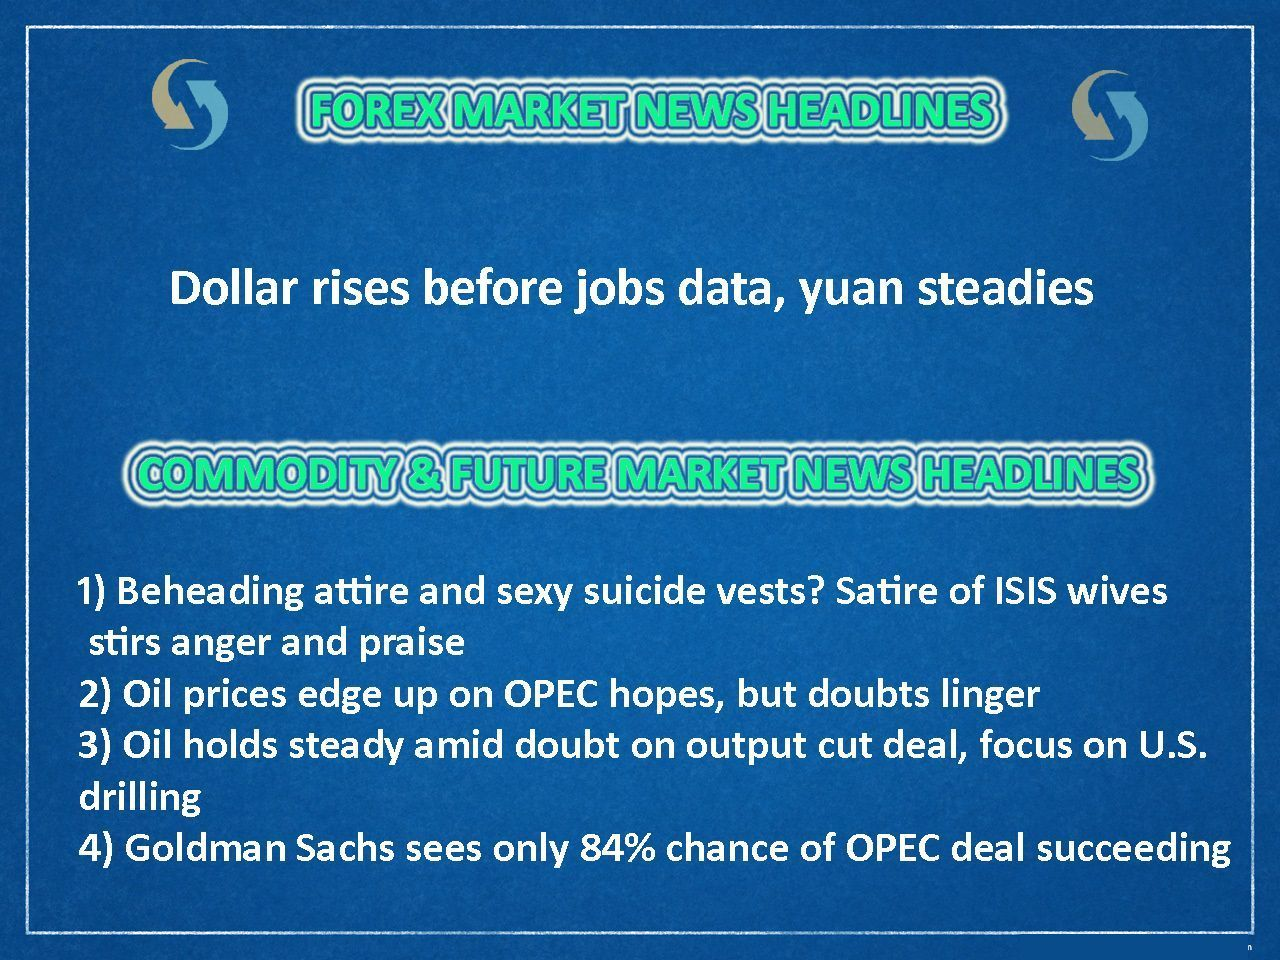 Today Forex Commodity Market Trend Report If You Find Live News Updates So Sapforex24 Provide Best Comex Tips